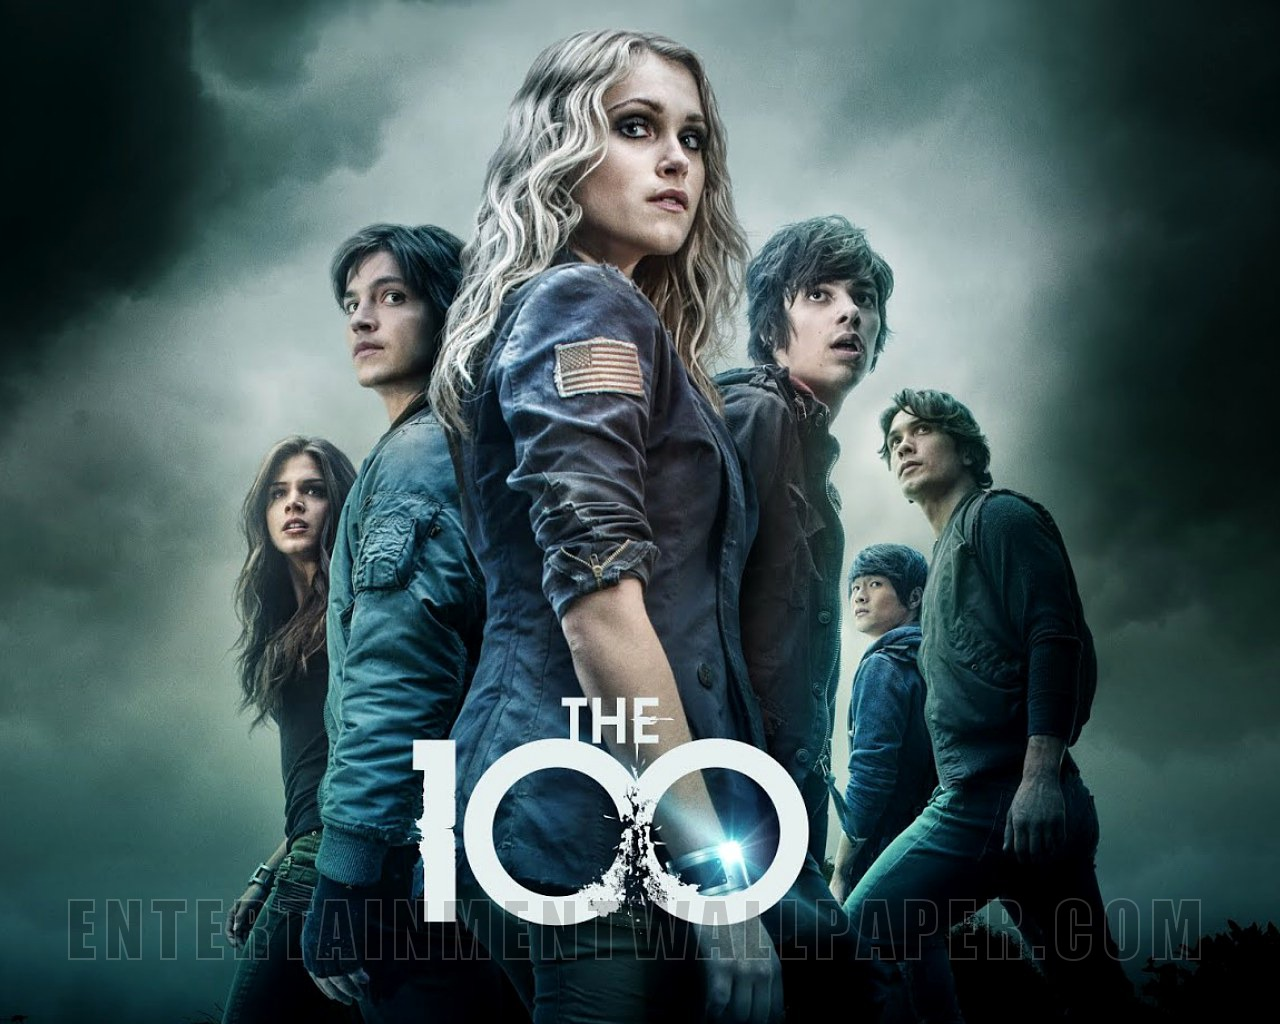 The 100 Season 5 Subtitles | Subtitles Free Download